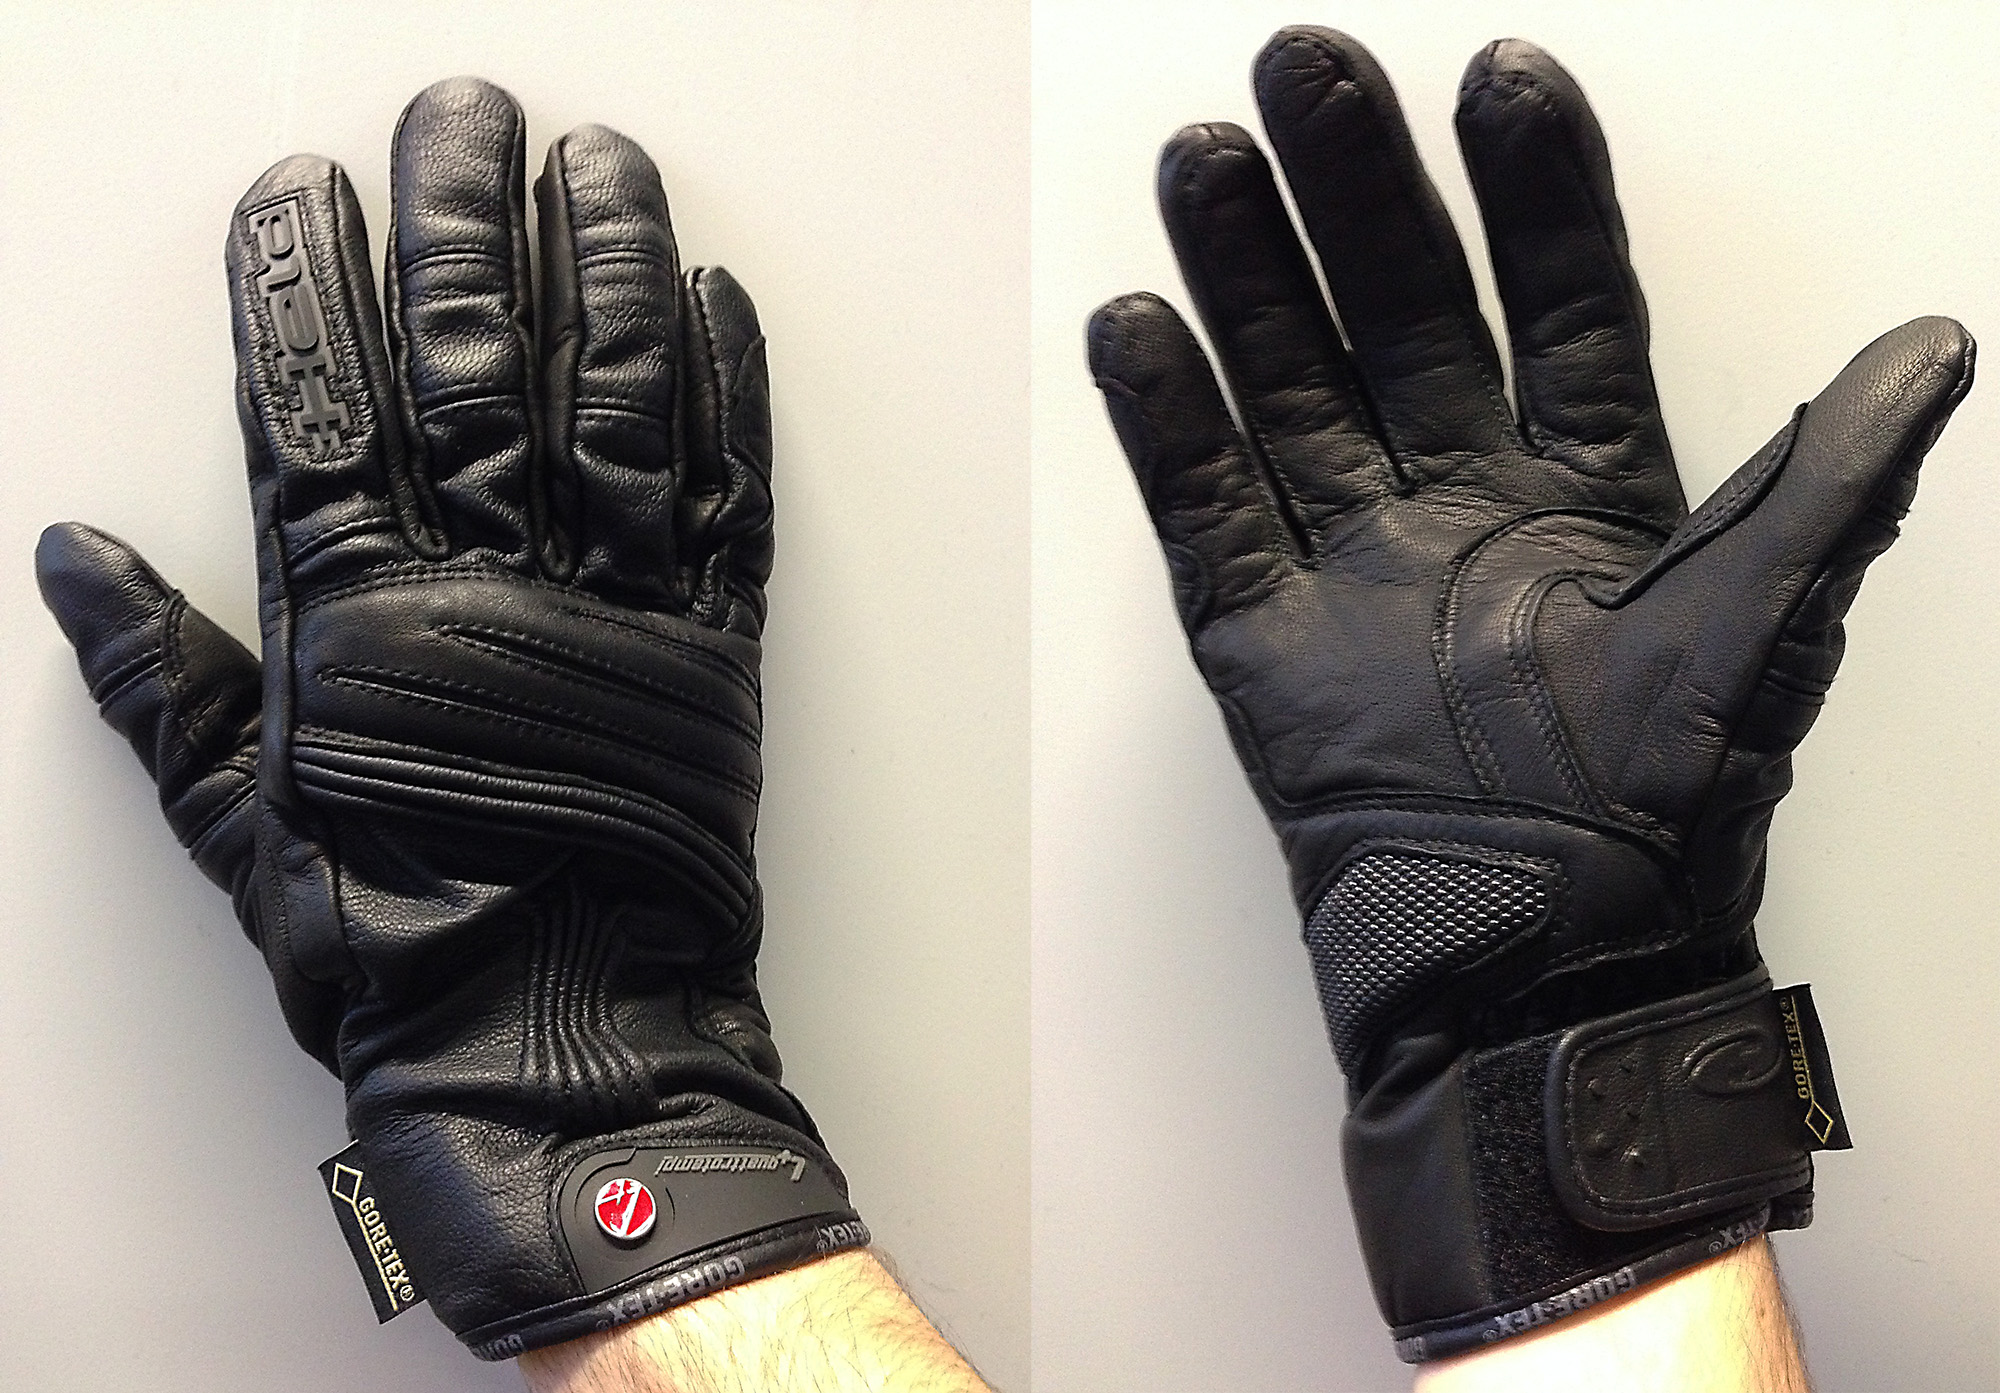 Xtrafit motorcycle gloves - The Wizzard Gloves Are Made From Kangaroo Leather And Goat Skin And Are Probably The Least Winter Biased Gloves In The Test With Their Thin Lining And Short